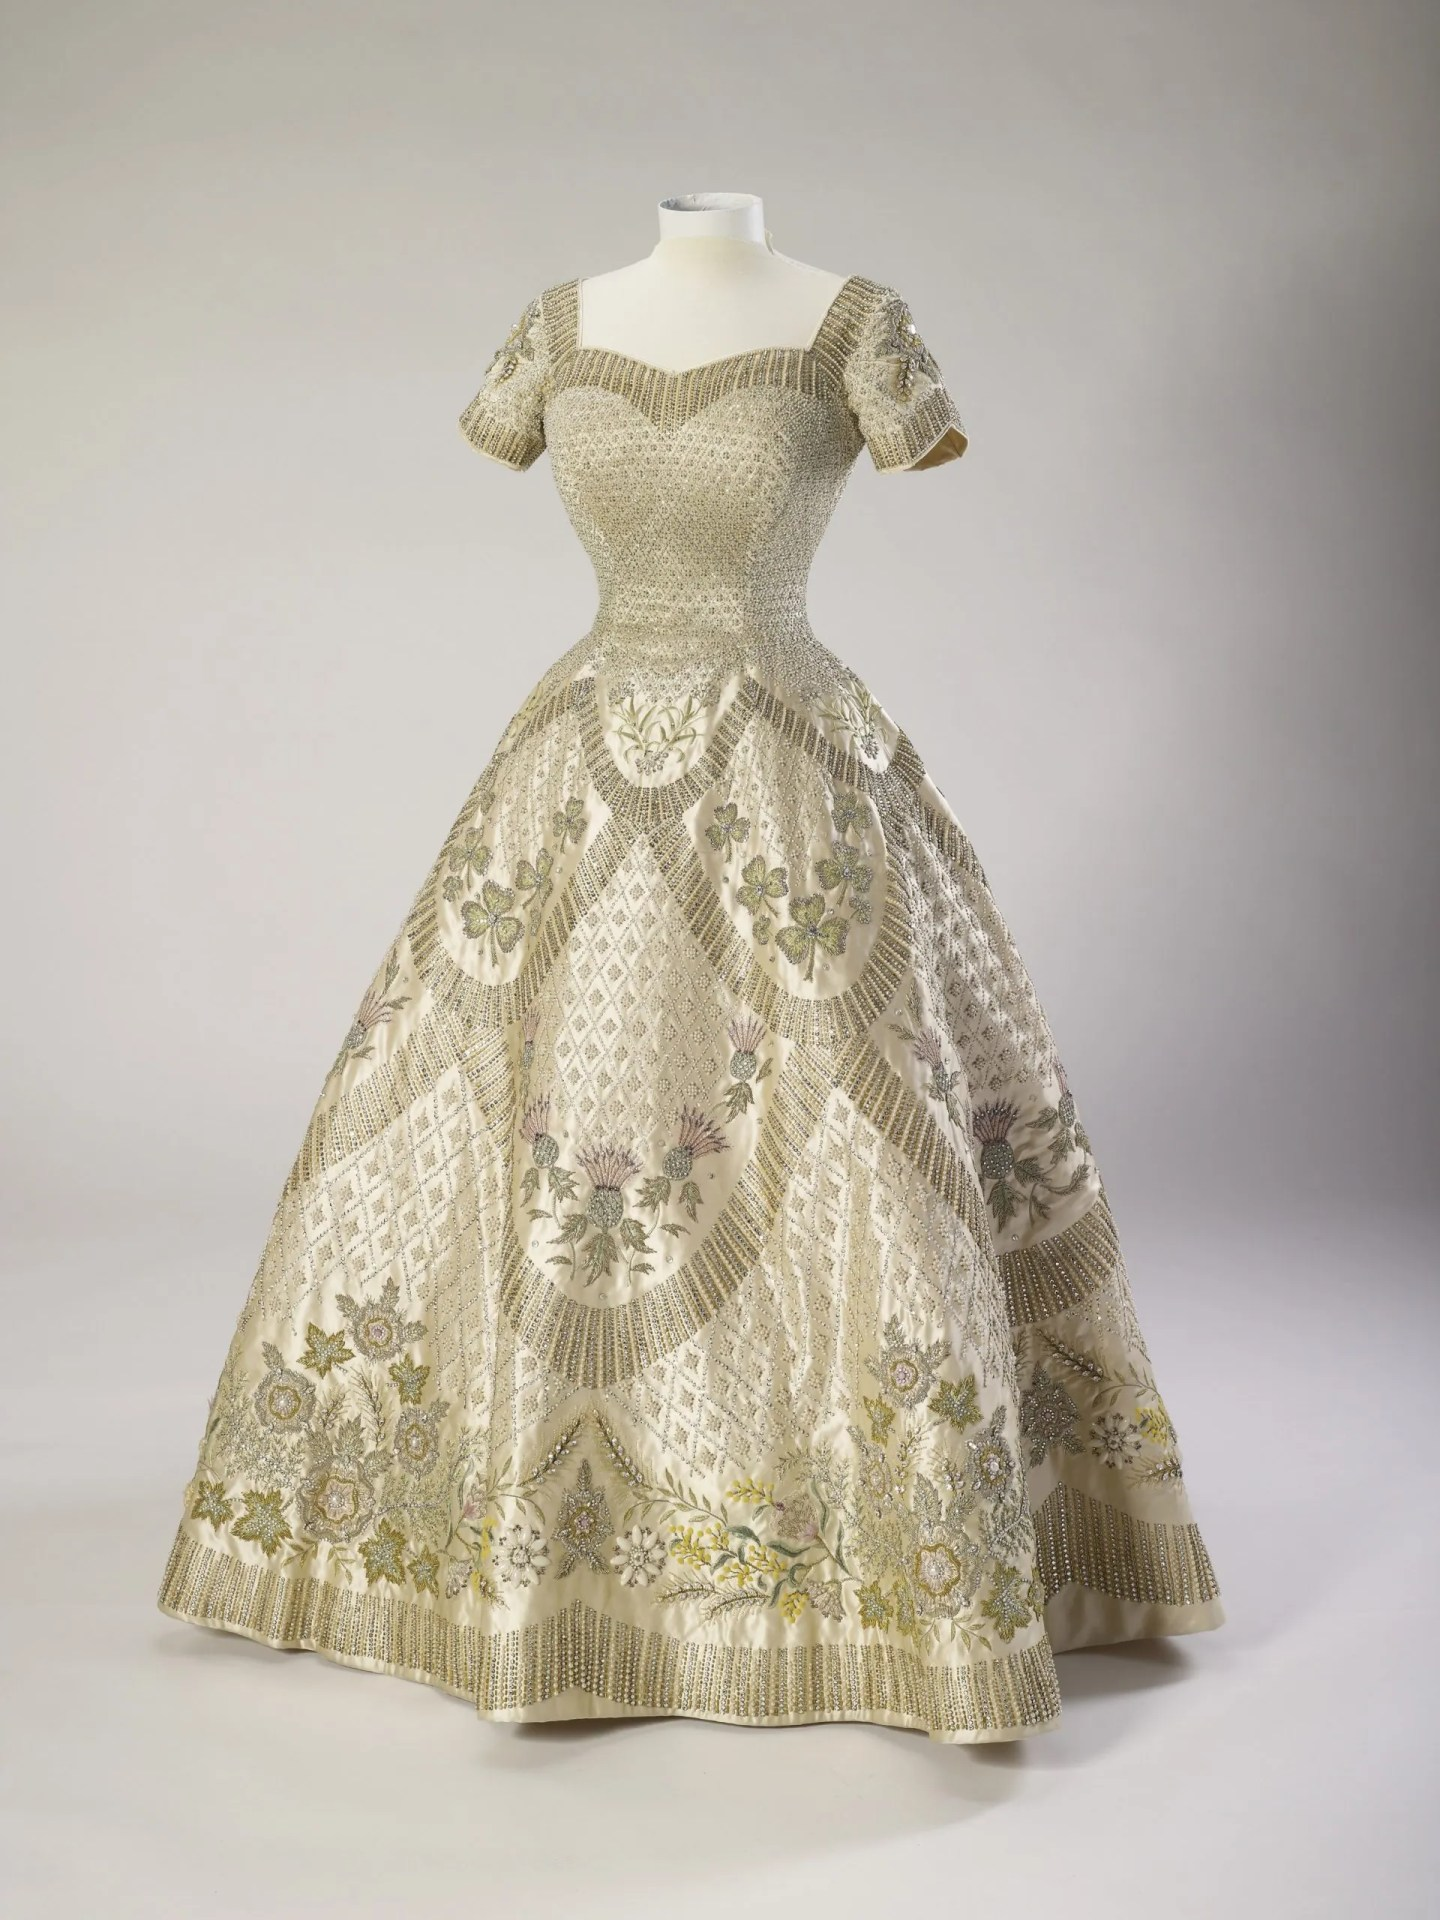 Her Majesty The Queen's Coronation dress, 1953, Norman Hartnell Royal Collection Trust © Her Majesty Queen Elizabeth II 2016